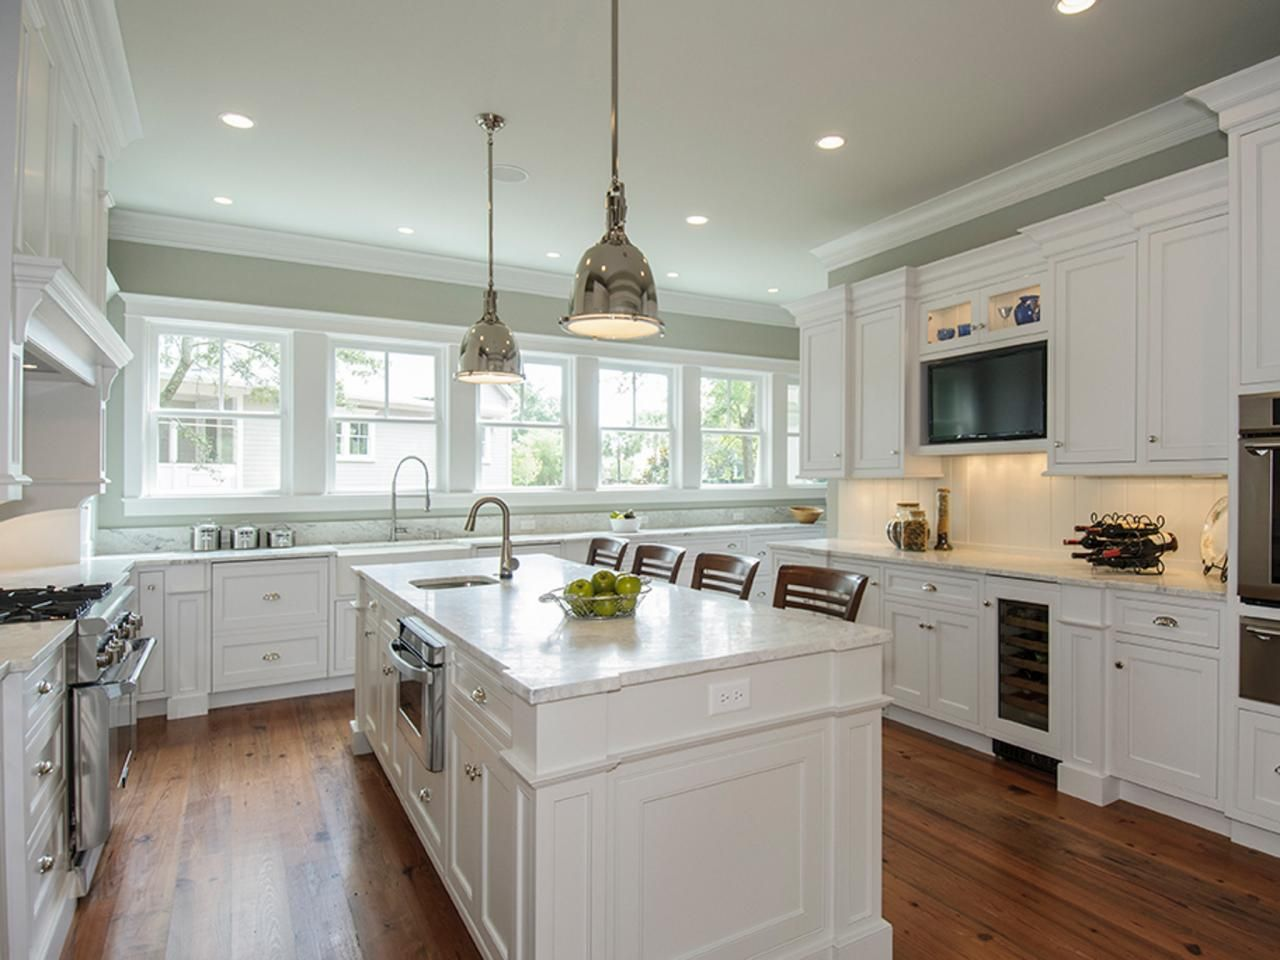 Painting Kitchen Cabinets Antique White Antique White Kitchen Cabinets White Cottage Kitchens Custom Kitchen Cabinets